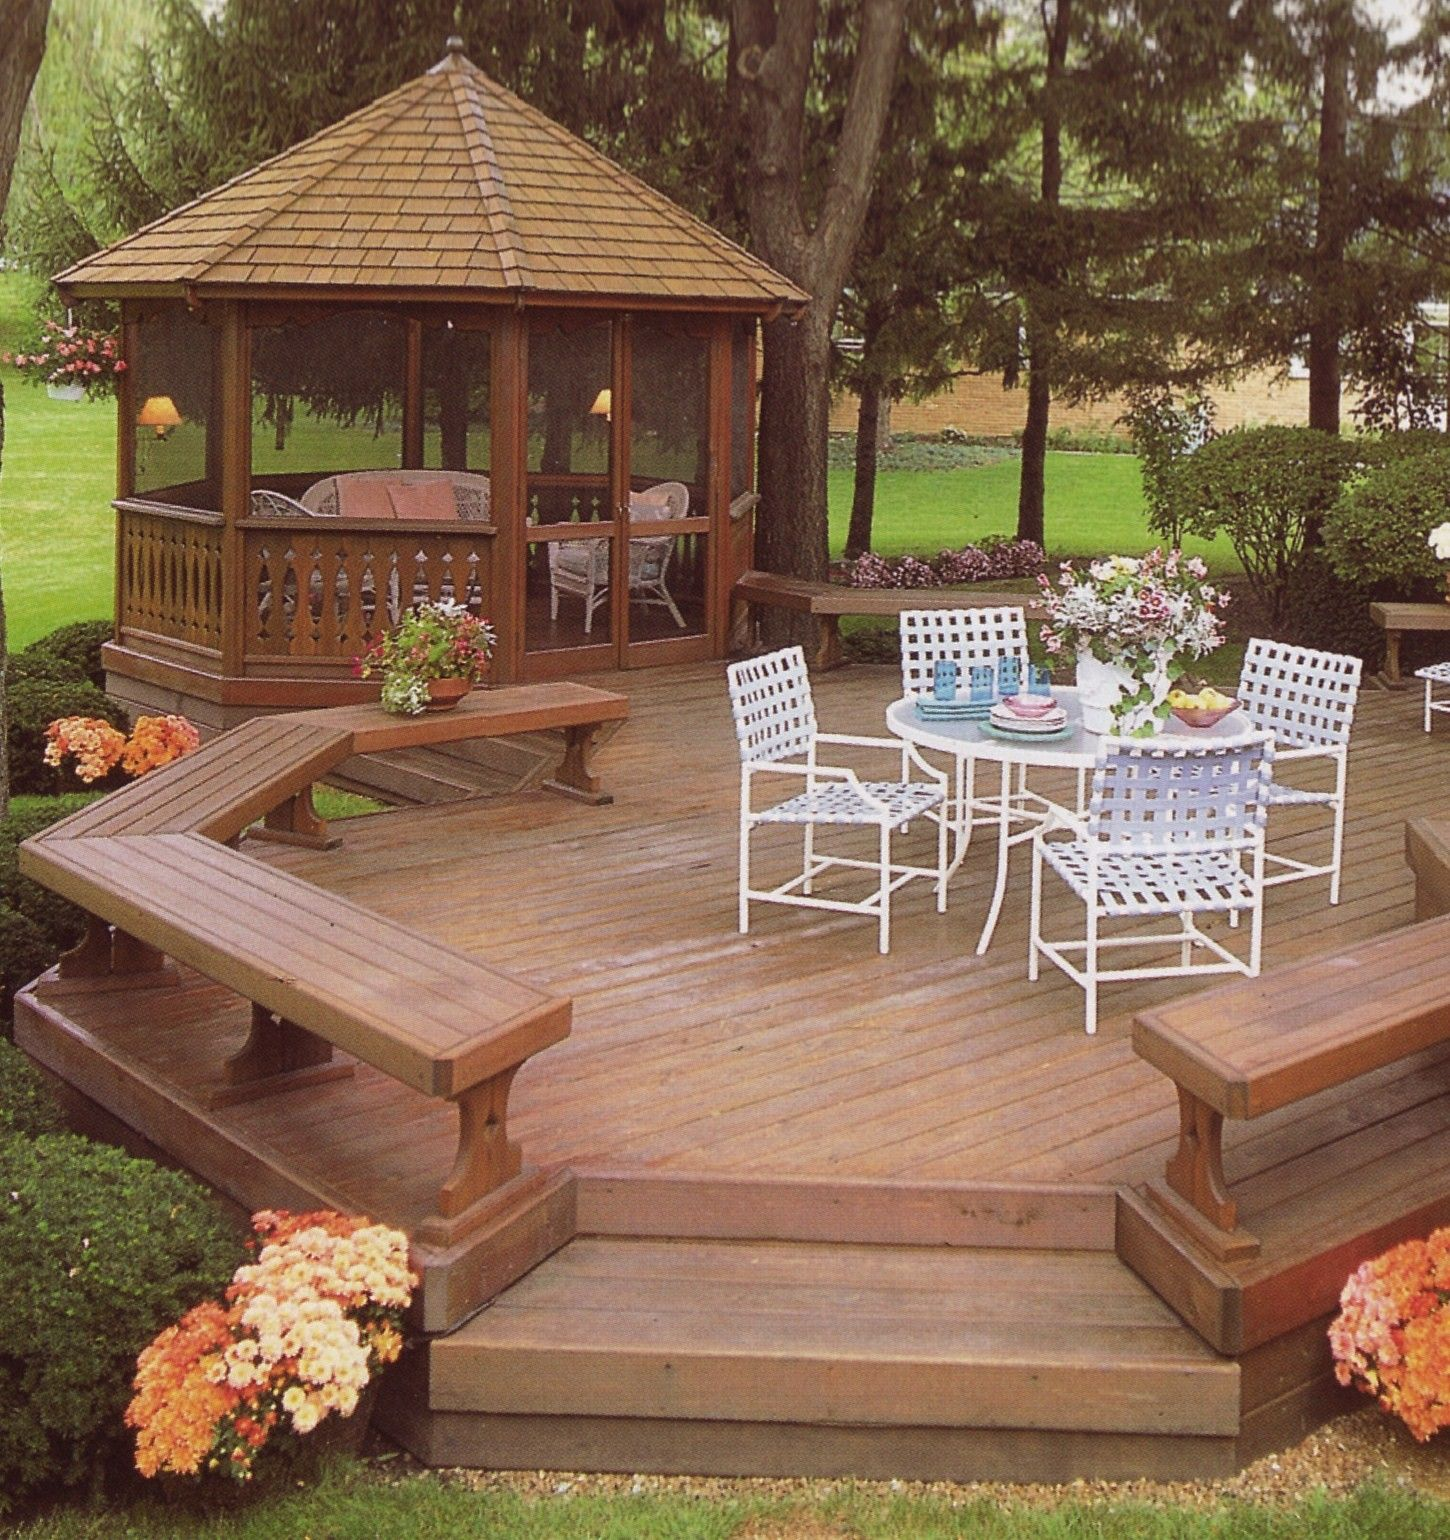 Open Freestanding Deck With Bench Seating Plus A Screened Gazebo Screen Doors To Escape When The Mosquitoes Come Out